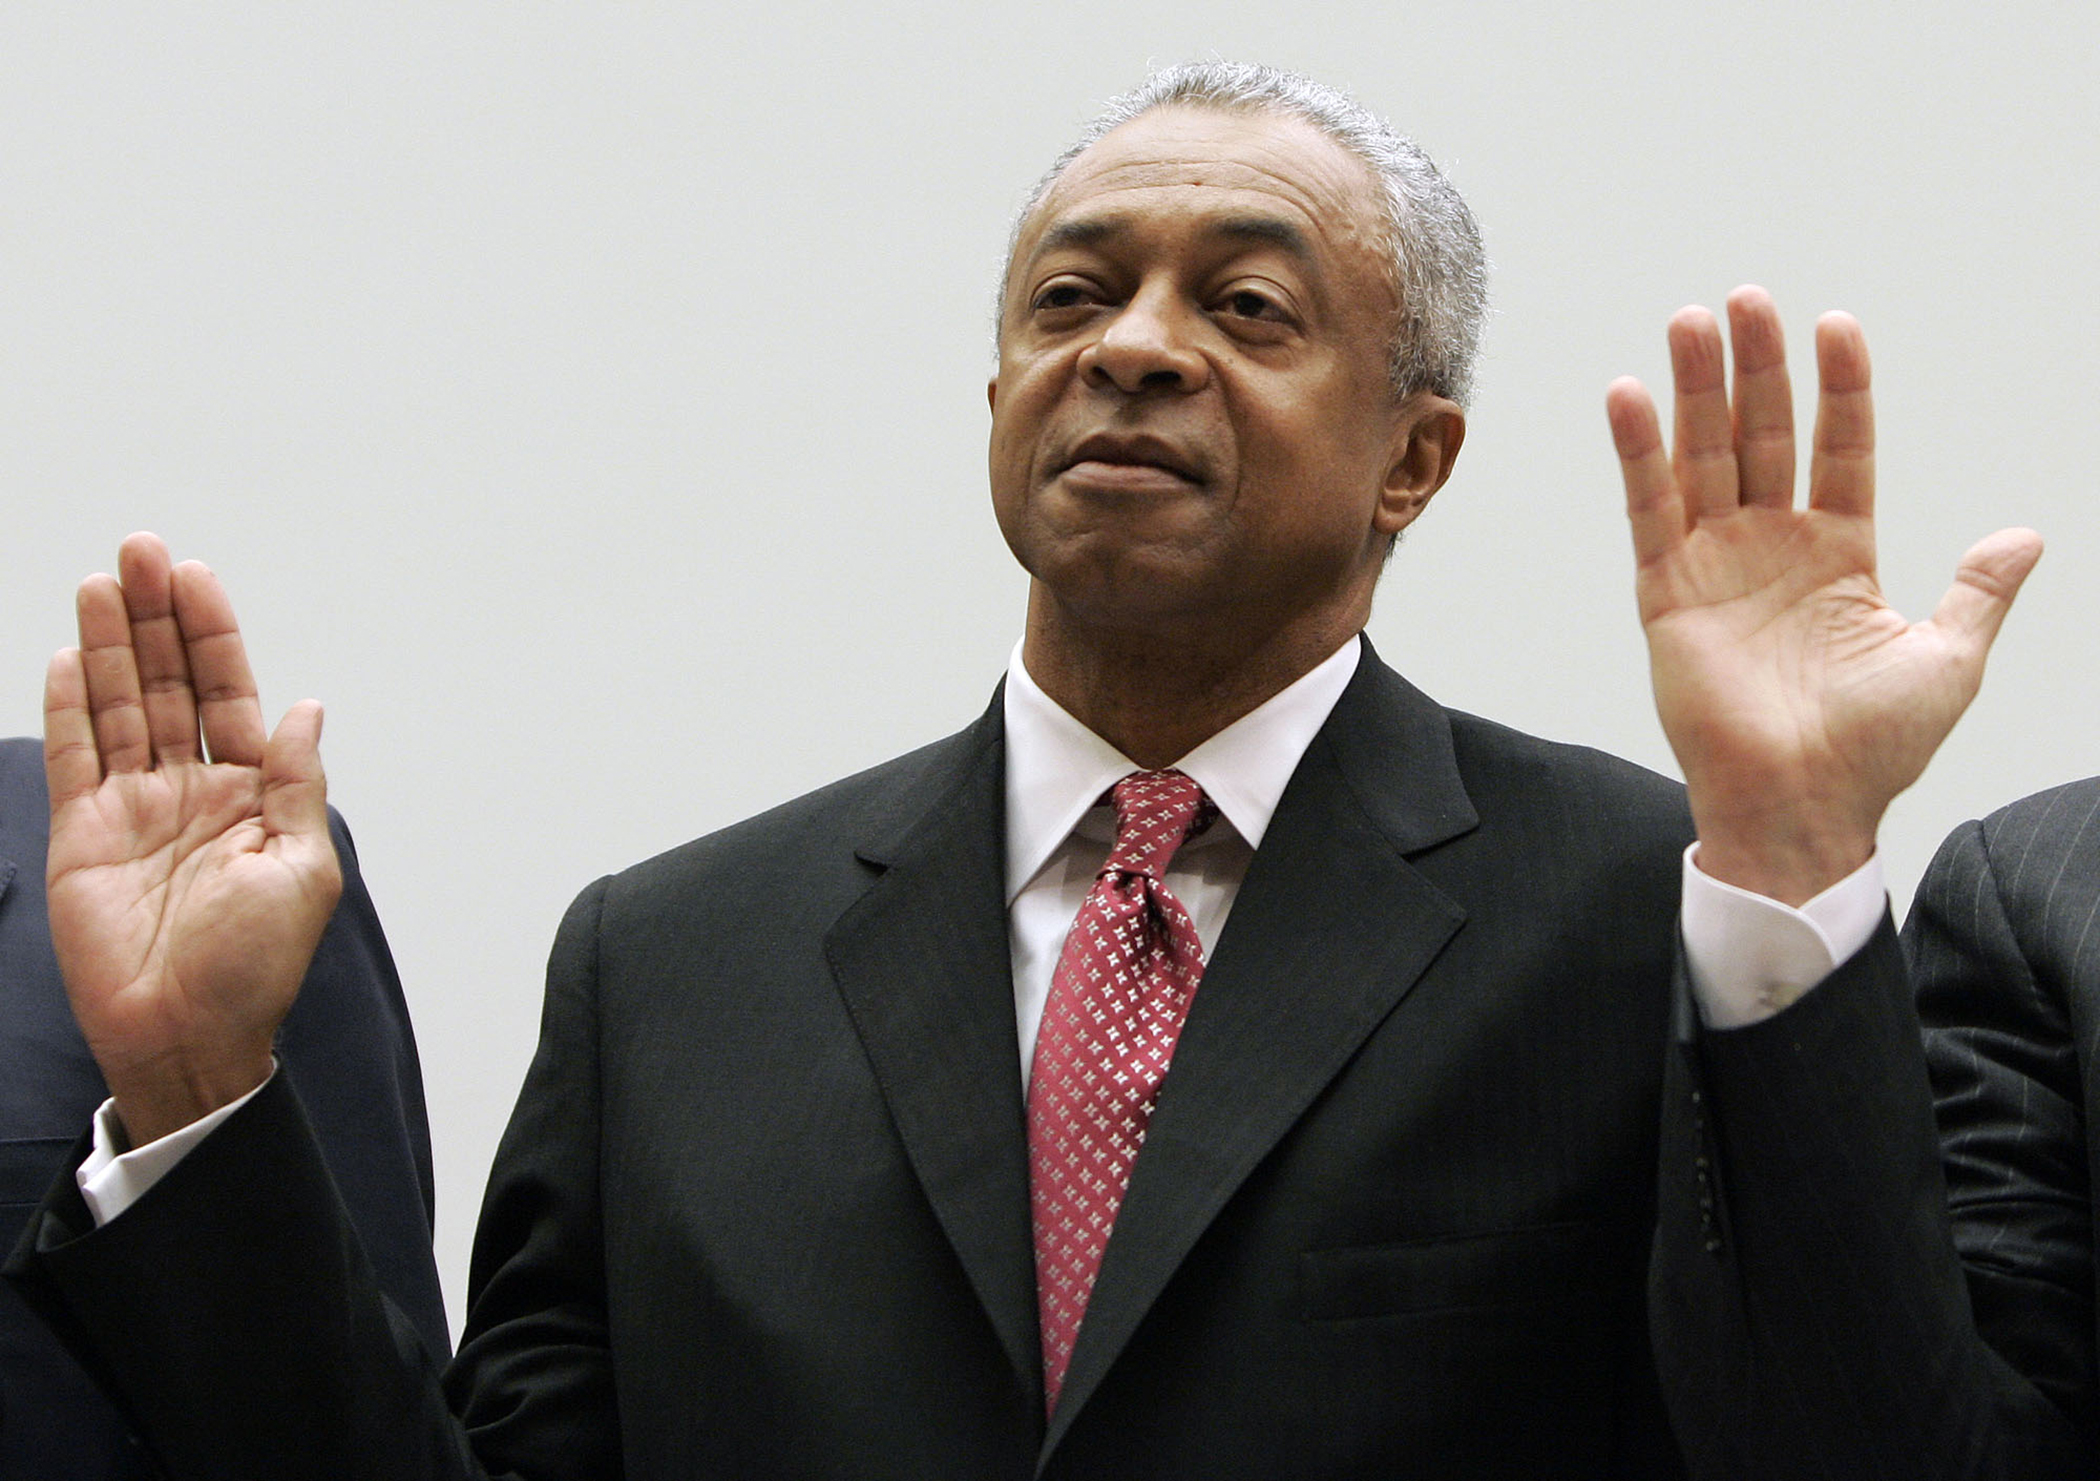 E. Stanley O'Neal, former Chairman and CEO of Merrill Lynch, is sworn in before the House Oversight and Government Reform Committee hearing on Capitol Hill in Washington, March 7, 2008 in Washington. The committee is examining the compensation and retirement packages granted to the CEOs of corporations deeply involved in the current mortgage crisis.